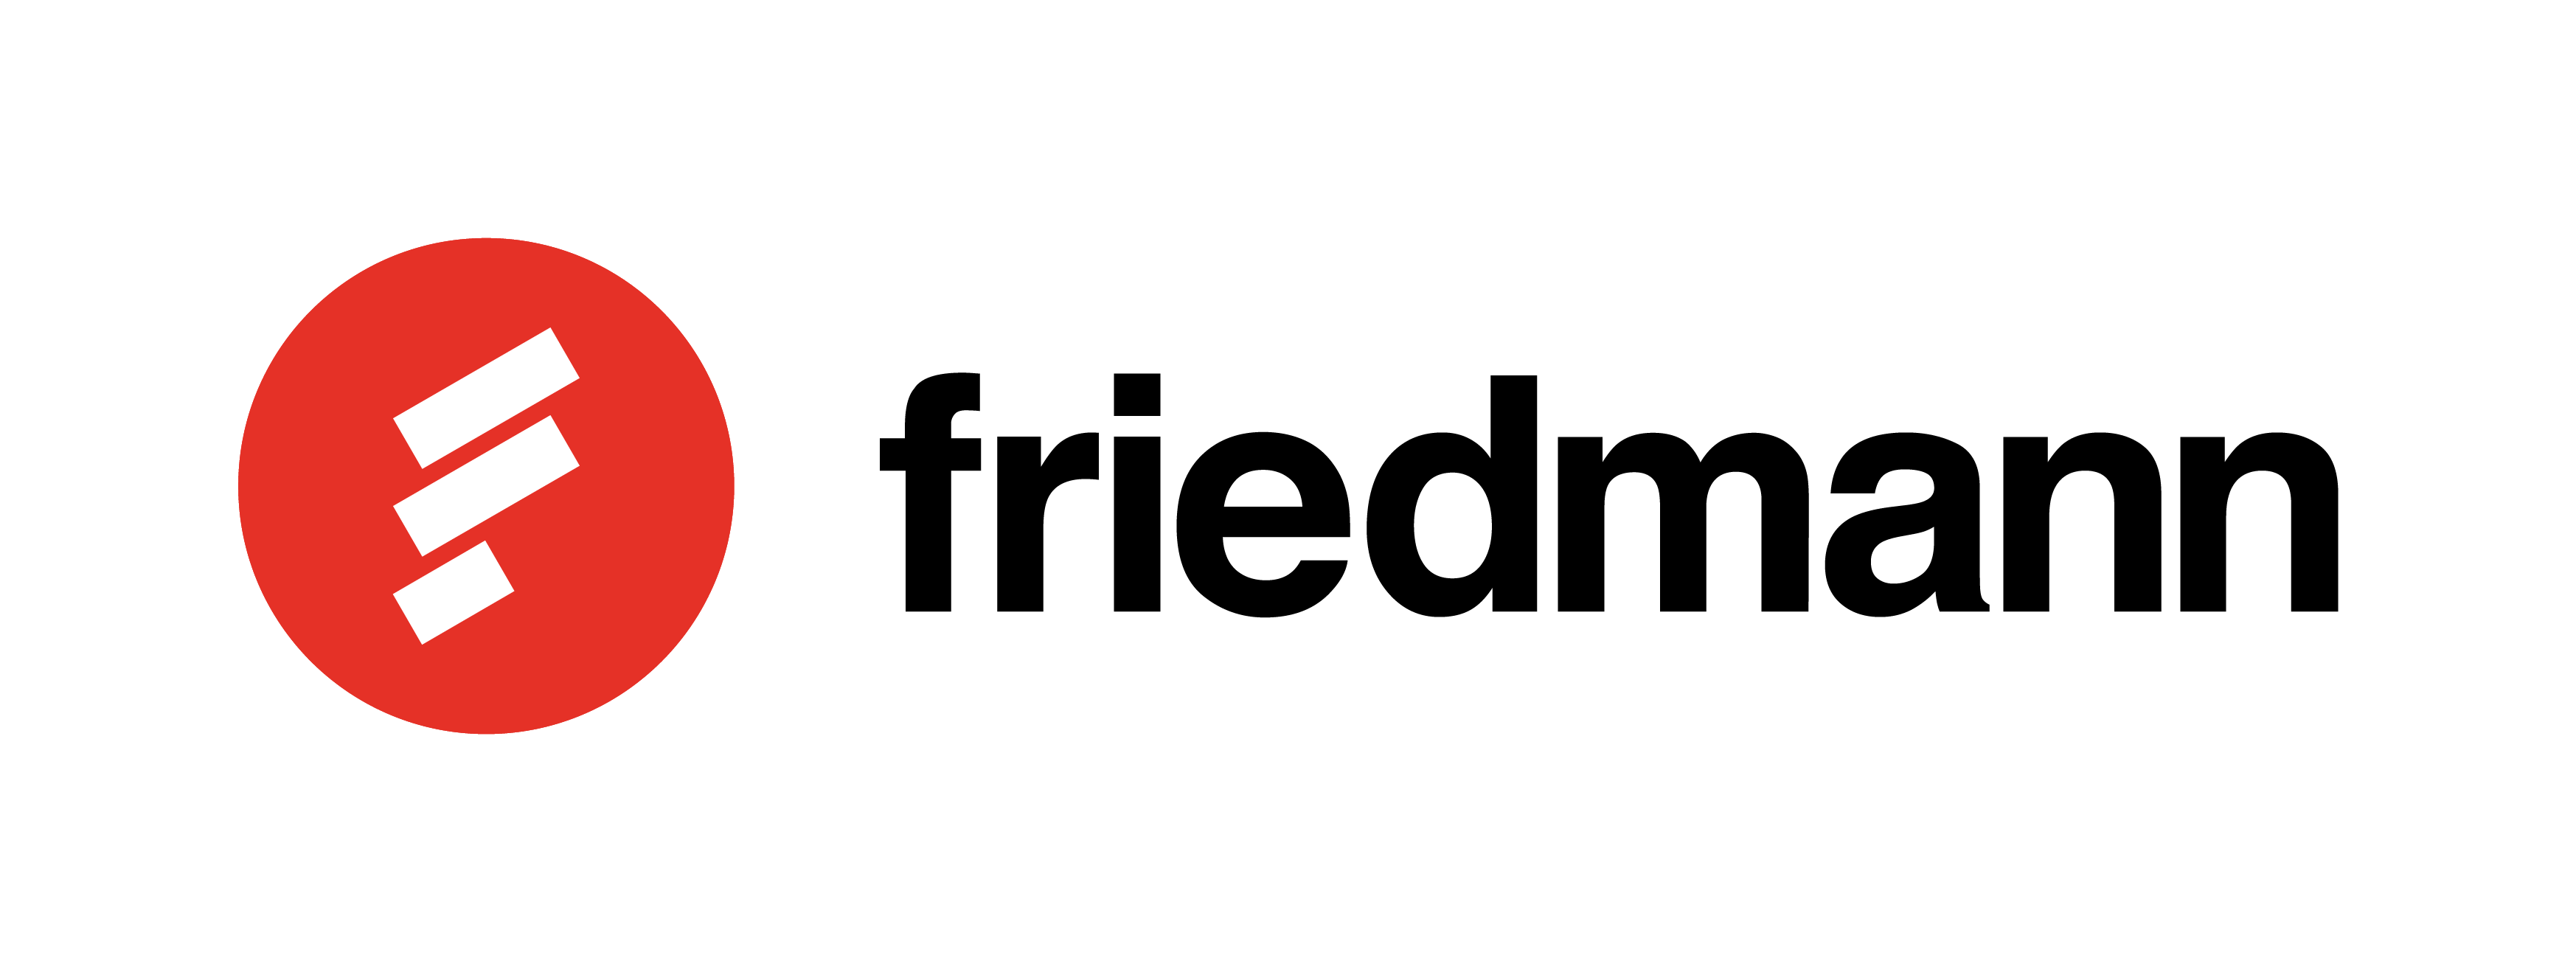 www.friedmann-photos.com